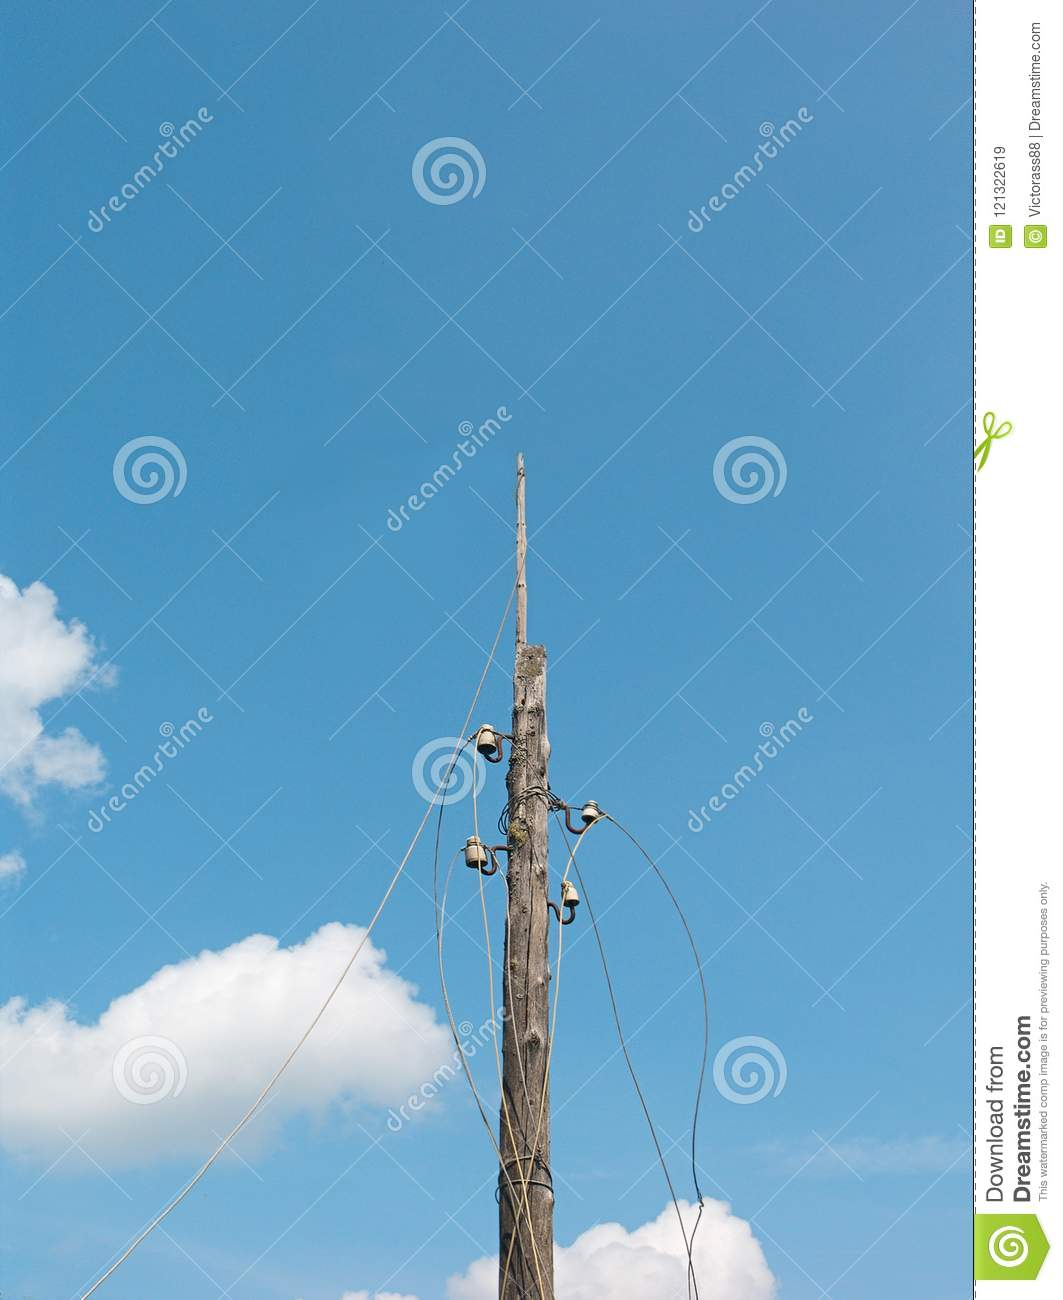 Electric Disconnected Wires Stock Image - Image of damage, daytime ...